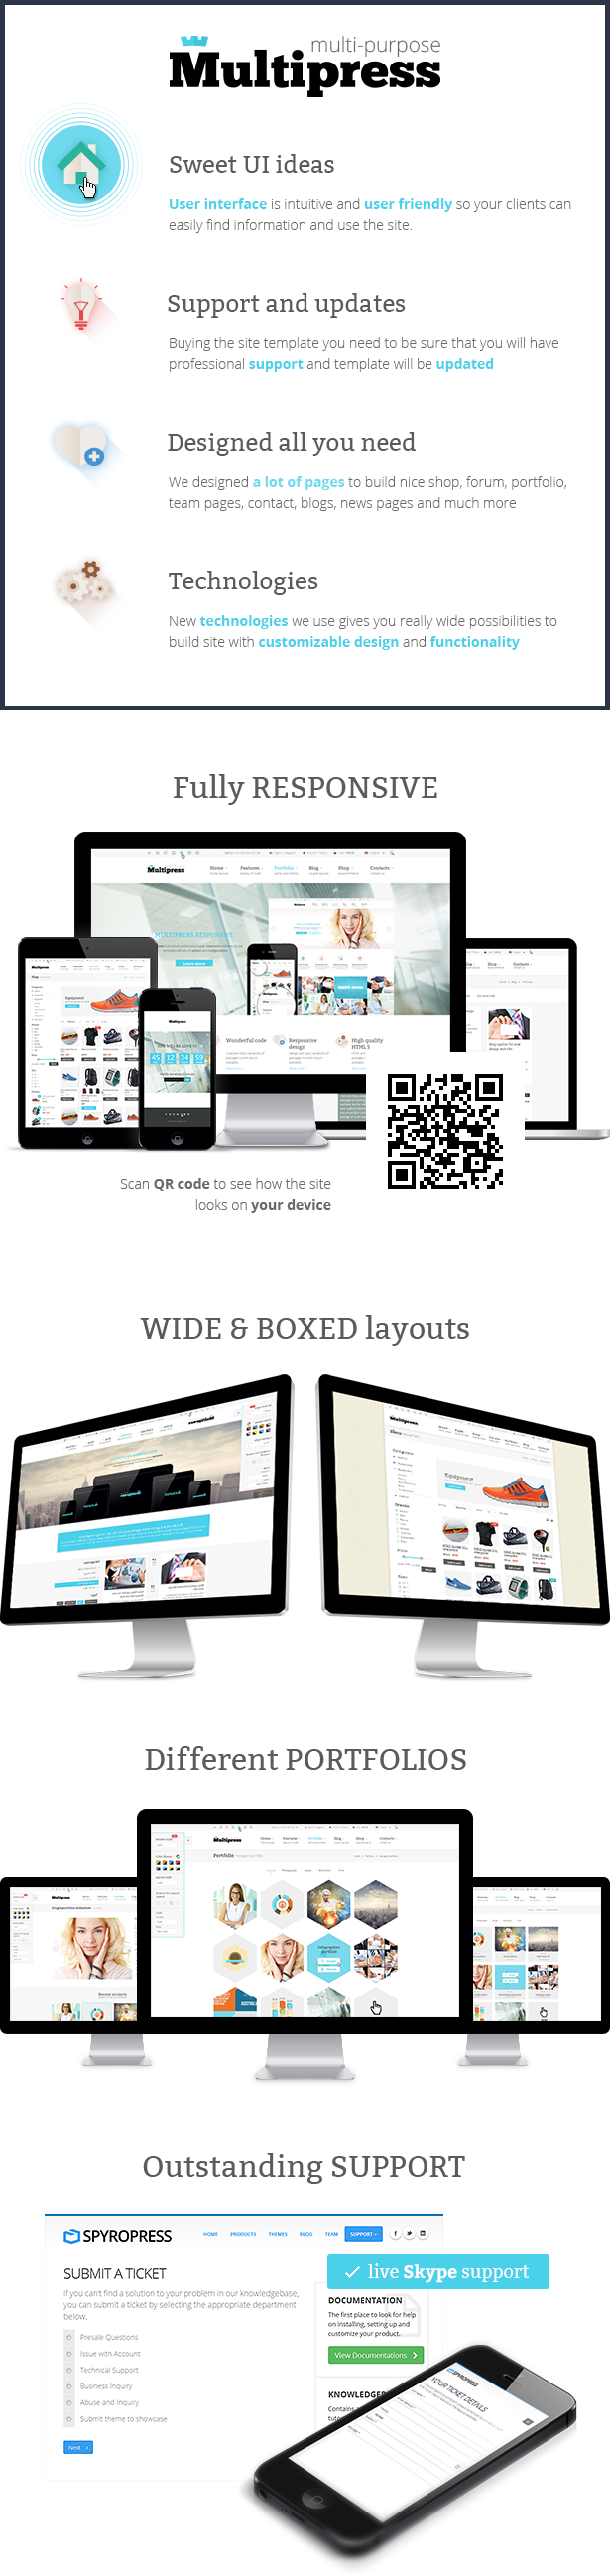 Multipress - Responsive HTML5 Template - 9